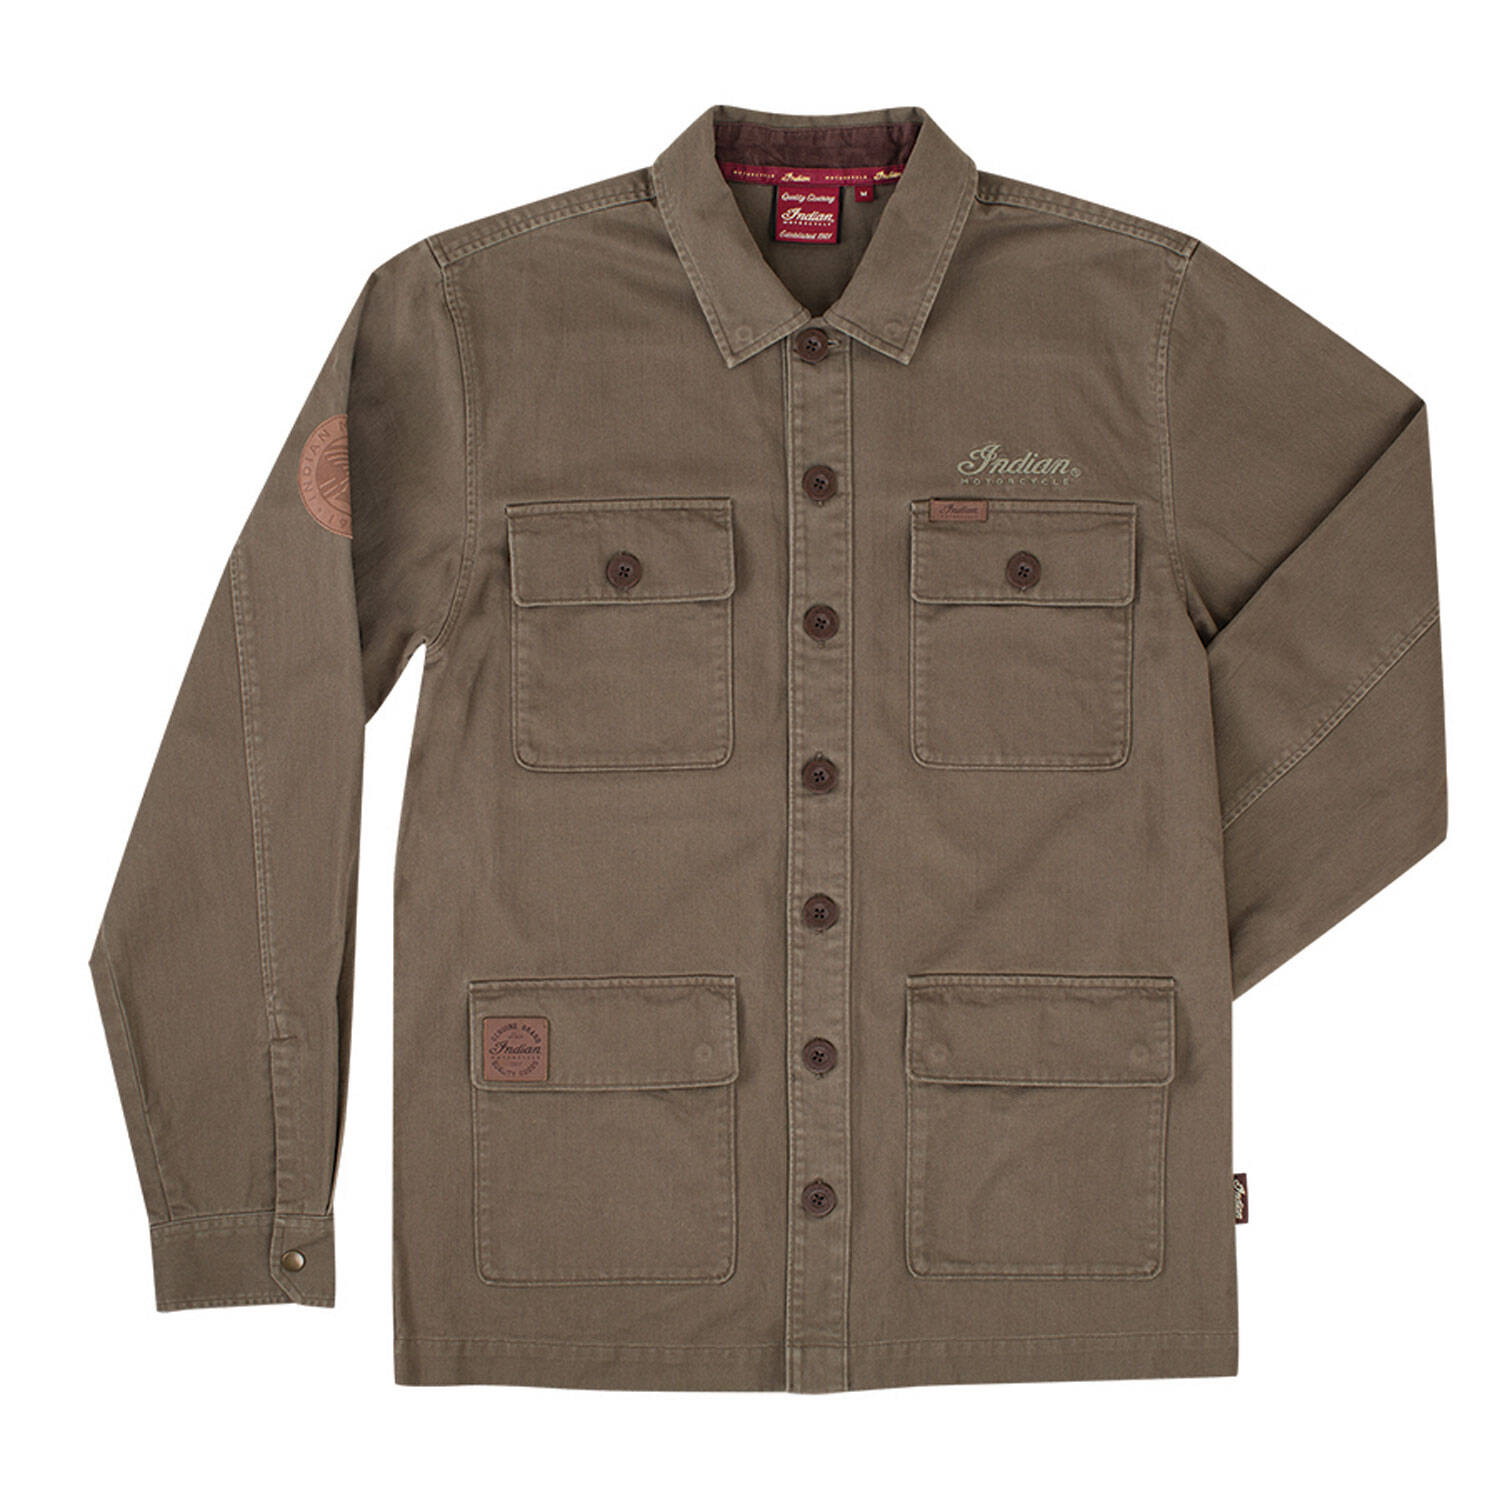 Men's Khaki Overshirt